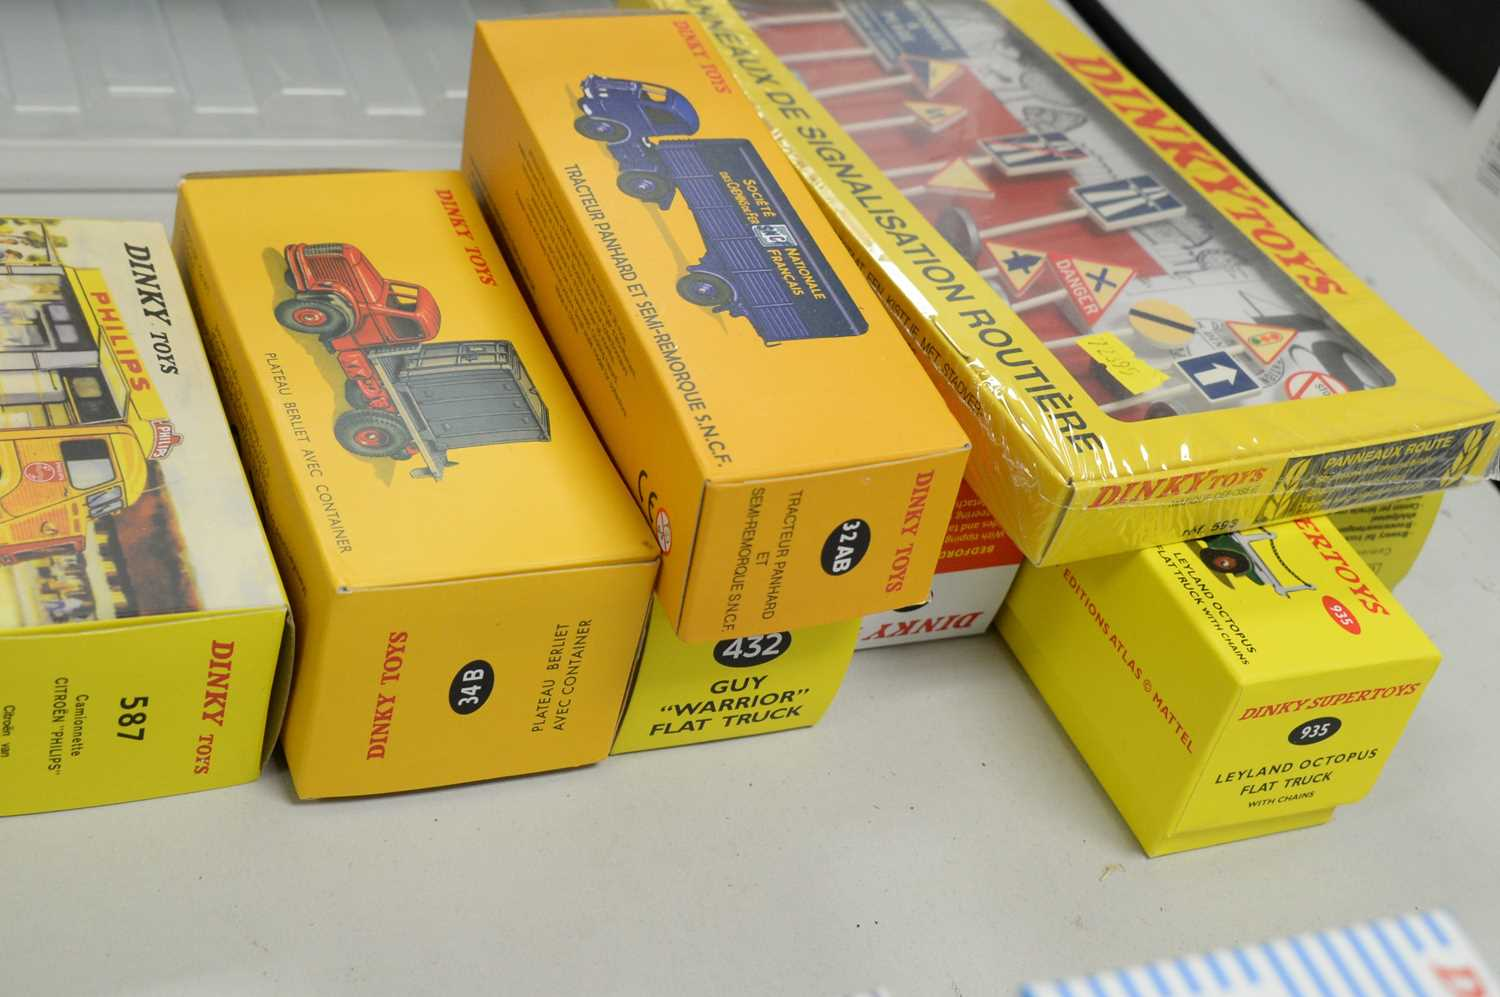 A collection of reproduction Dinky Toys diecast scale model vehicles. - Image 3 of 3